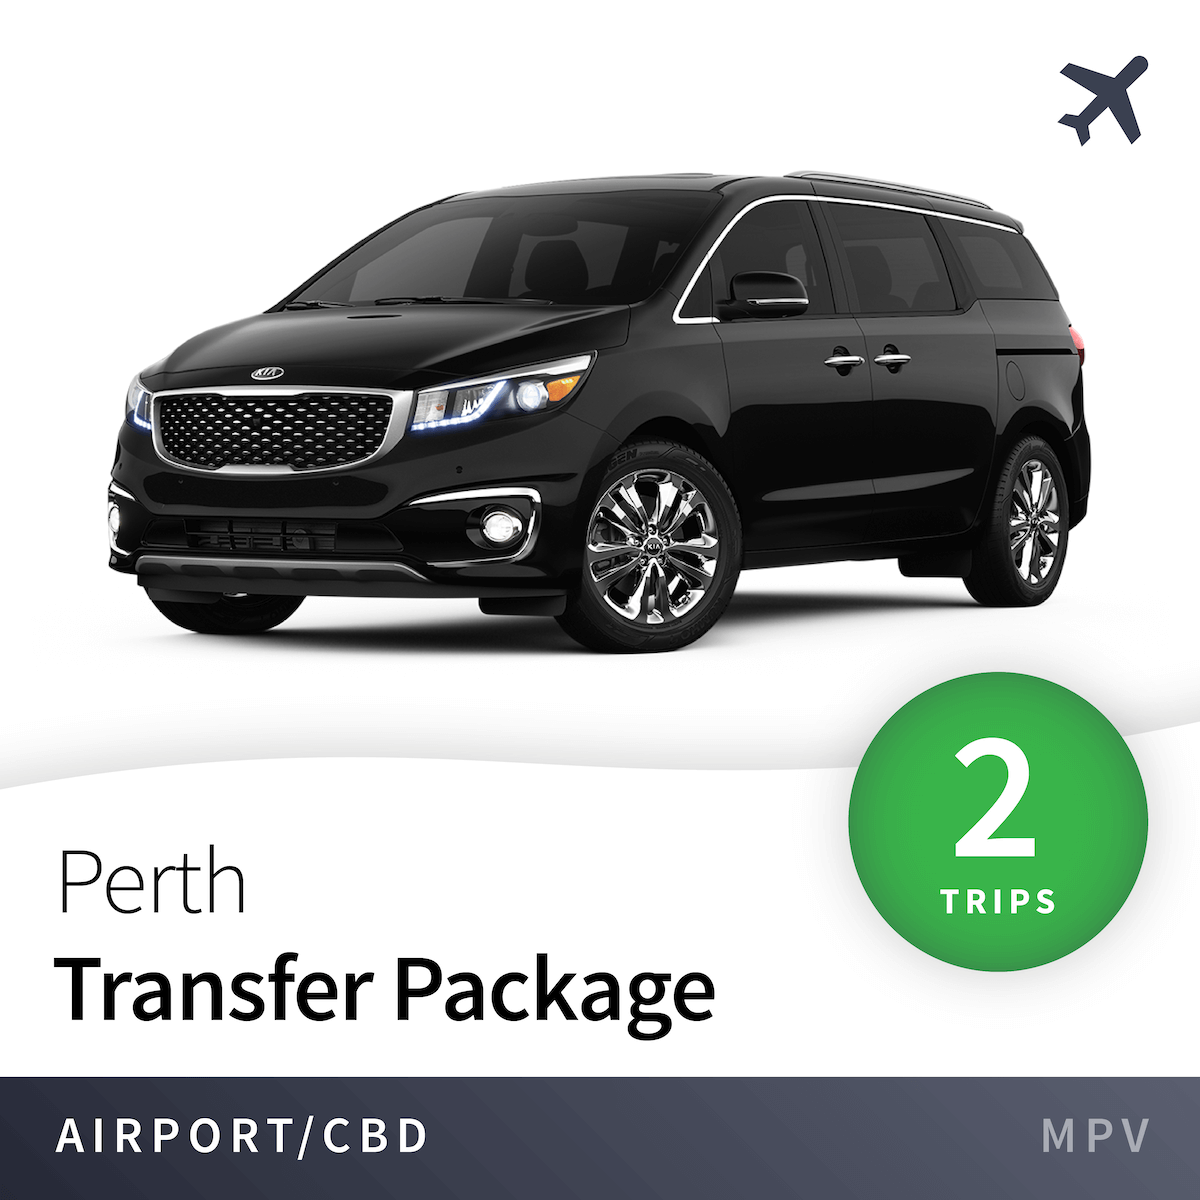 Perth Airport Transfer Package - MPV (2 Trips) 1